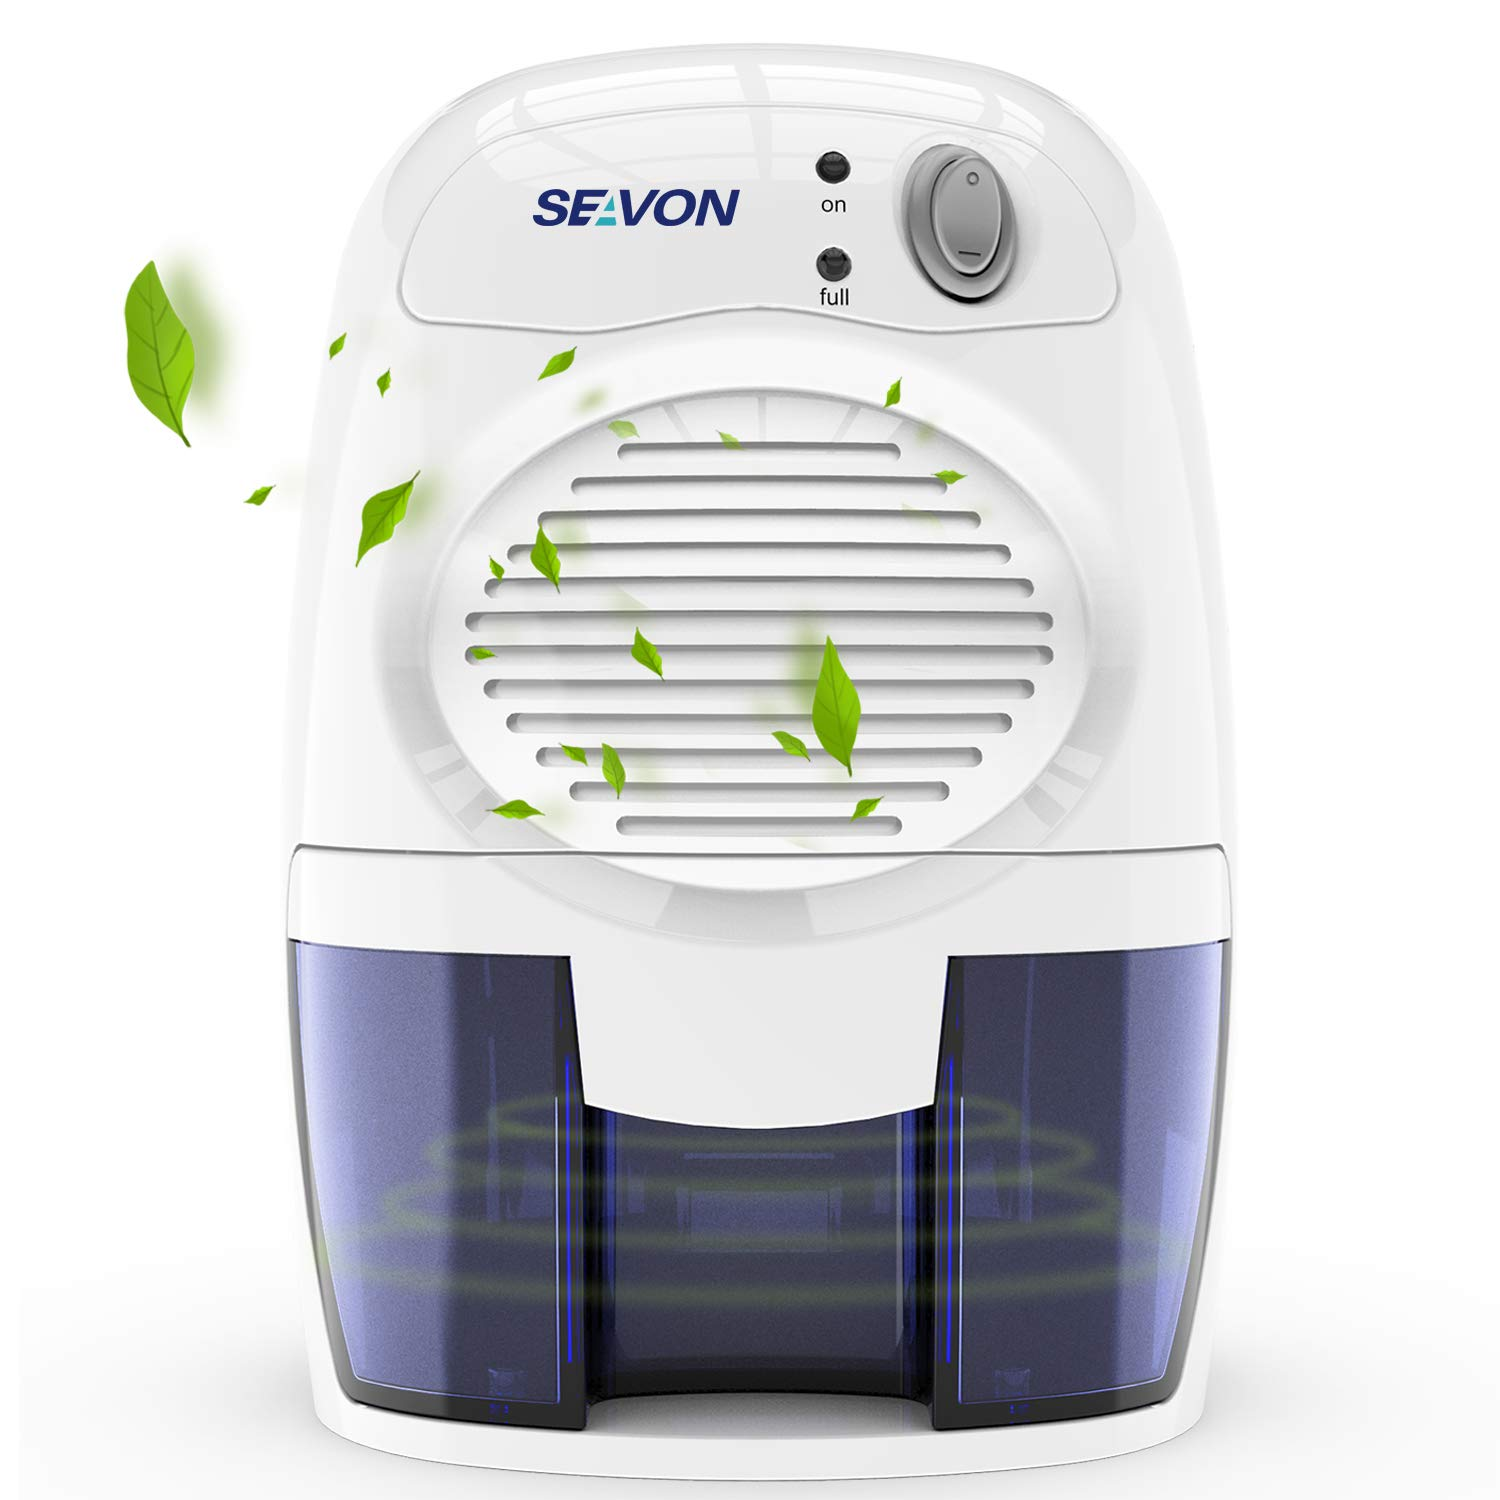 SEAVON Electric Mini Dehumidifier, 1500 Cubic Feet (156 sq ft) Portable and Compact 500ml(16 oz) Capacity Quiet Mini Dehumidifiers for Basement, Bedroom, Bathroom, RV, Closet, Auto Shut Off by SEAVON